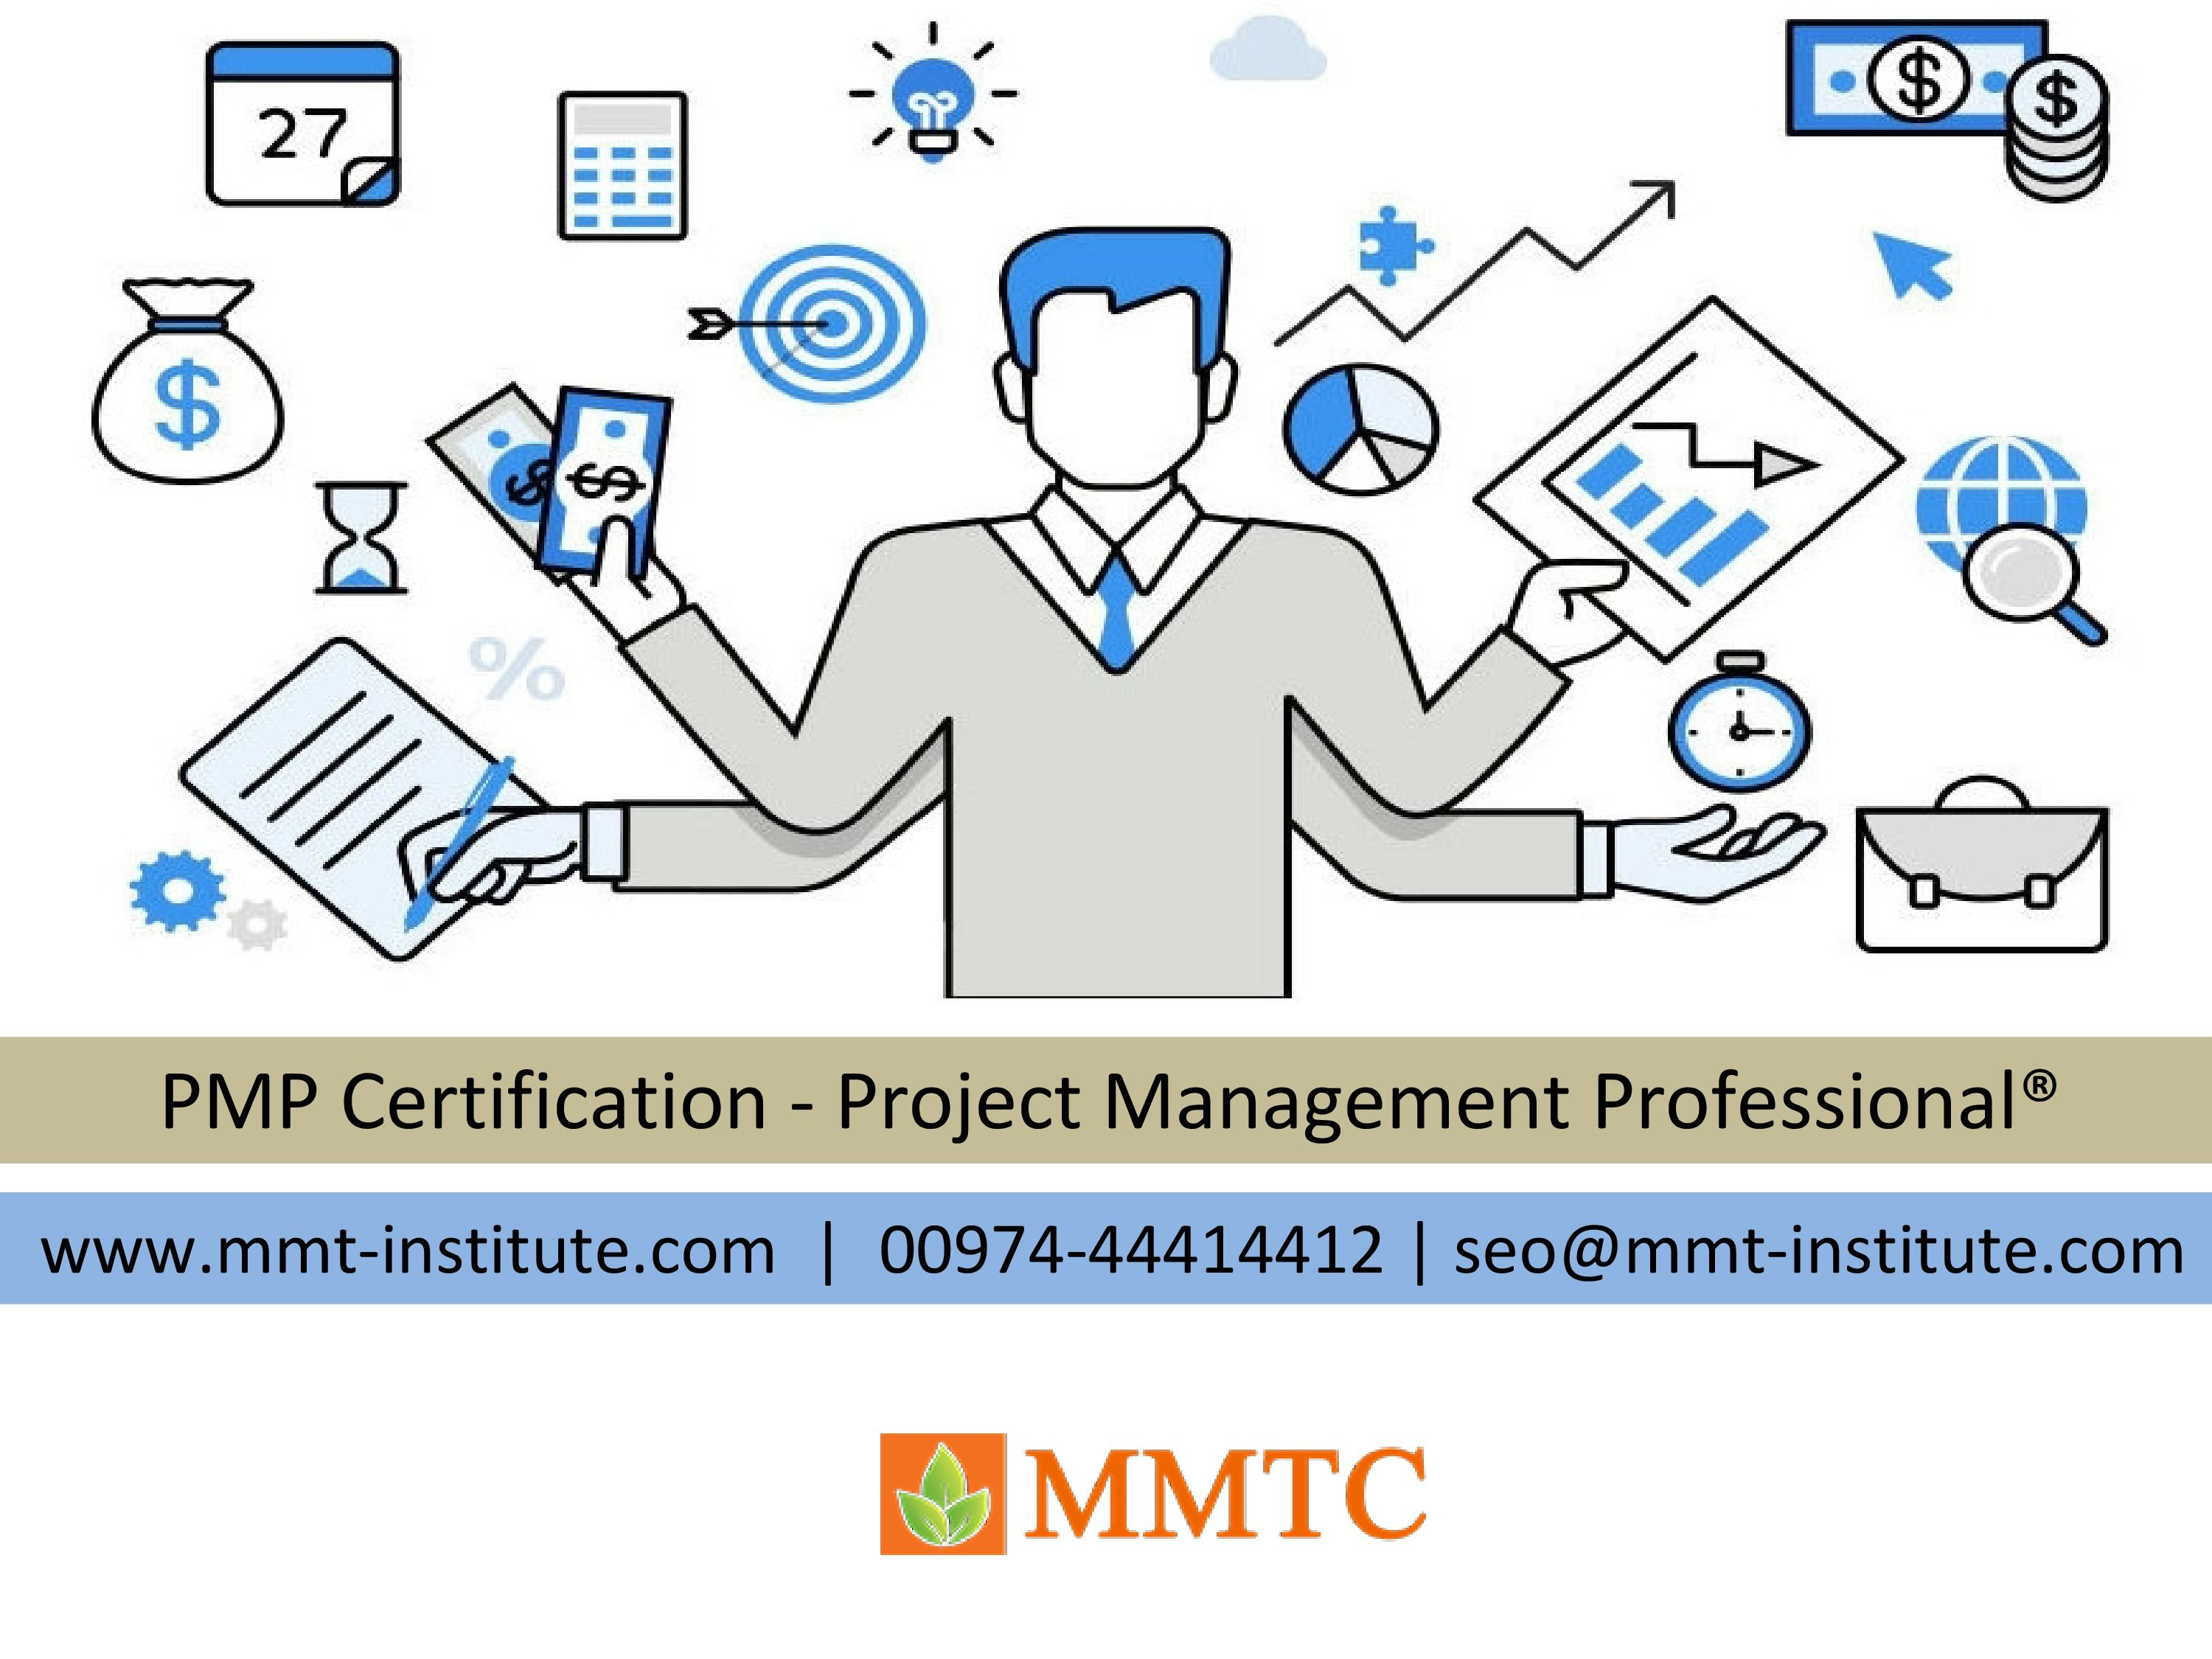 Any Body Looking To Join Pmp Certification Training Course In Qatar Pmp Exam Microsoft Project Exam Preparation